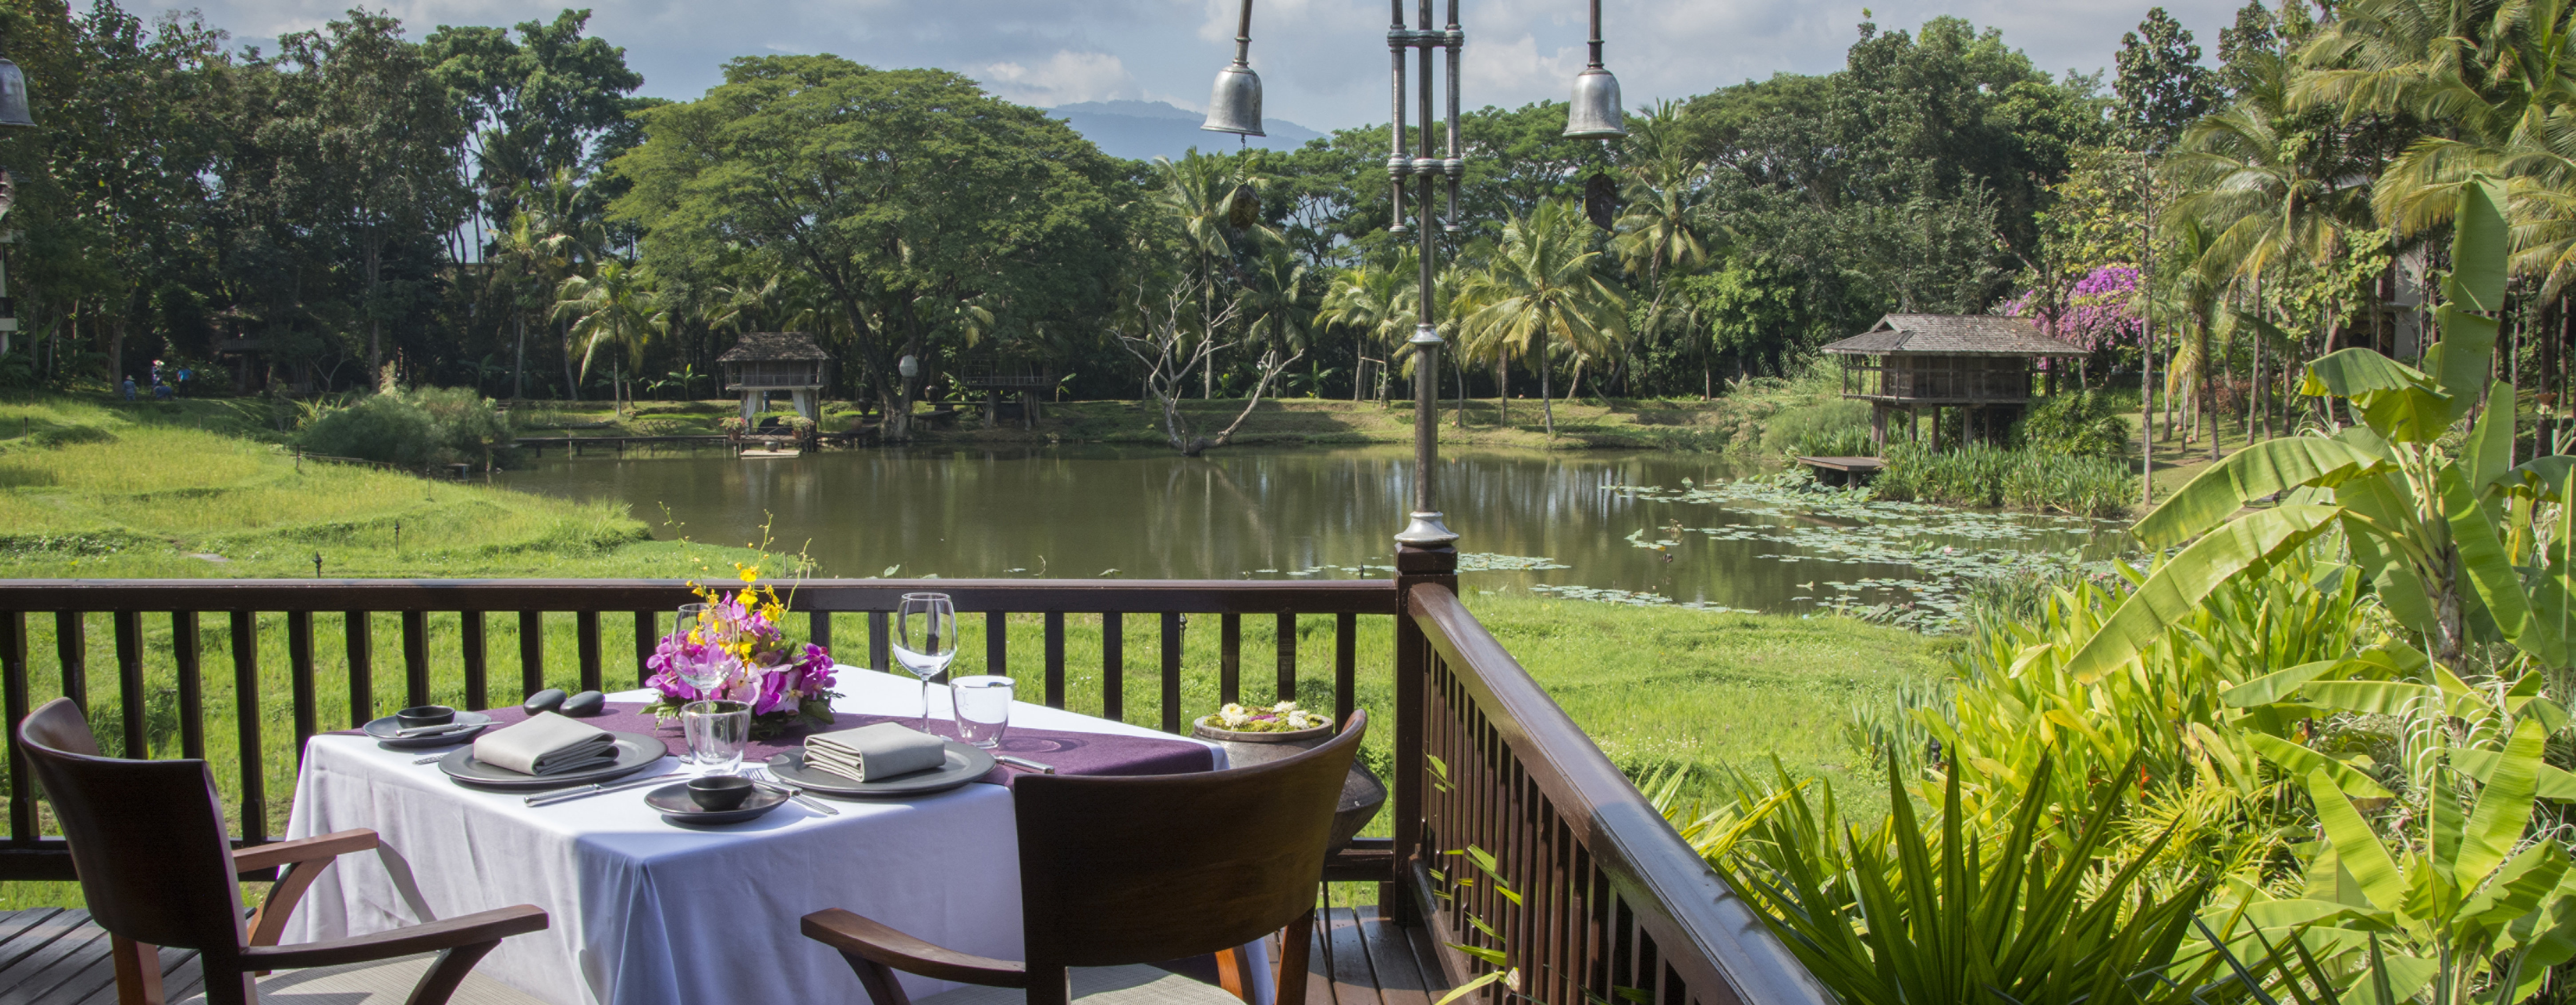 private-dining-fs-chiang-mai